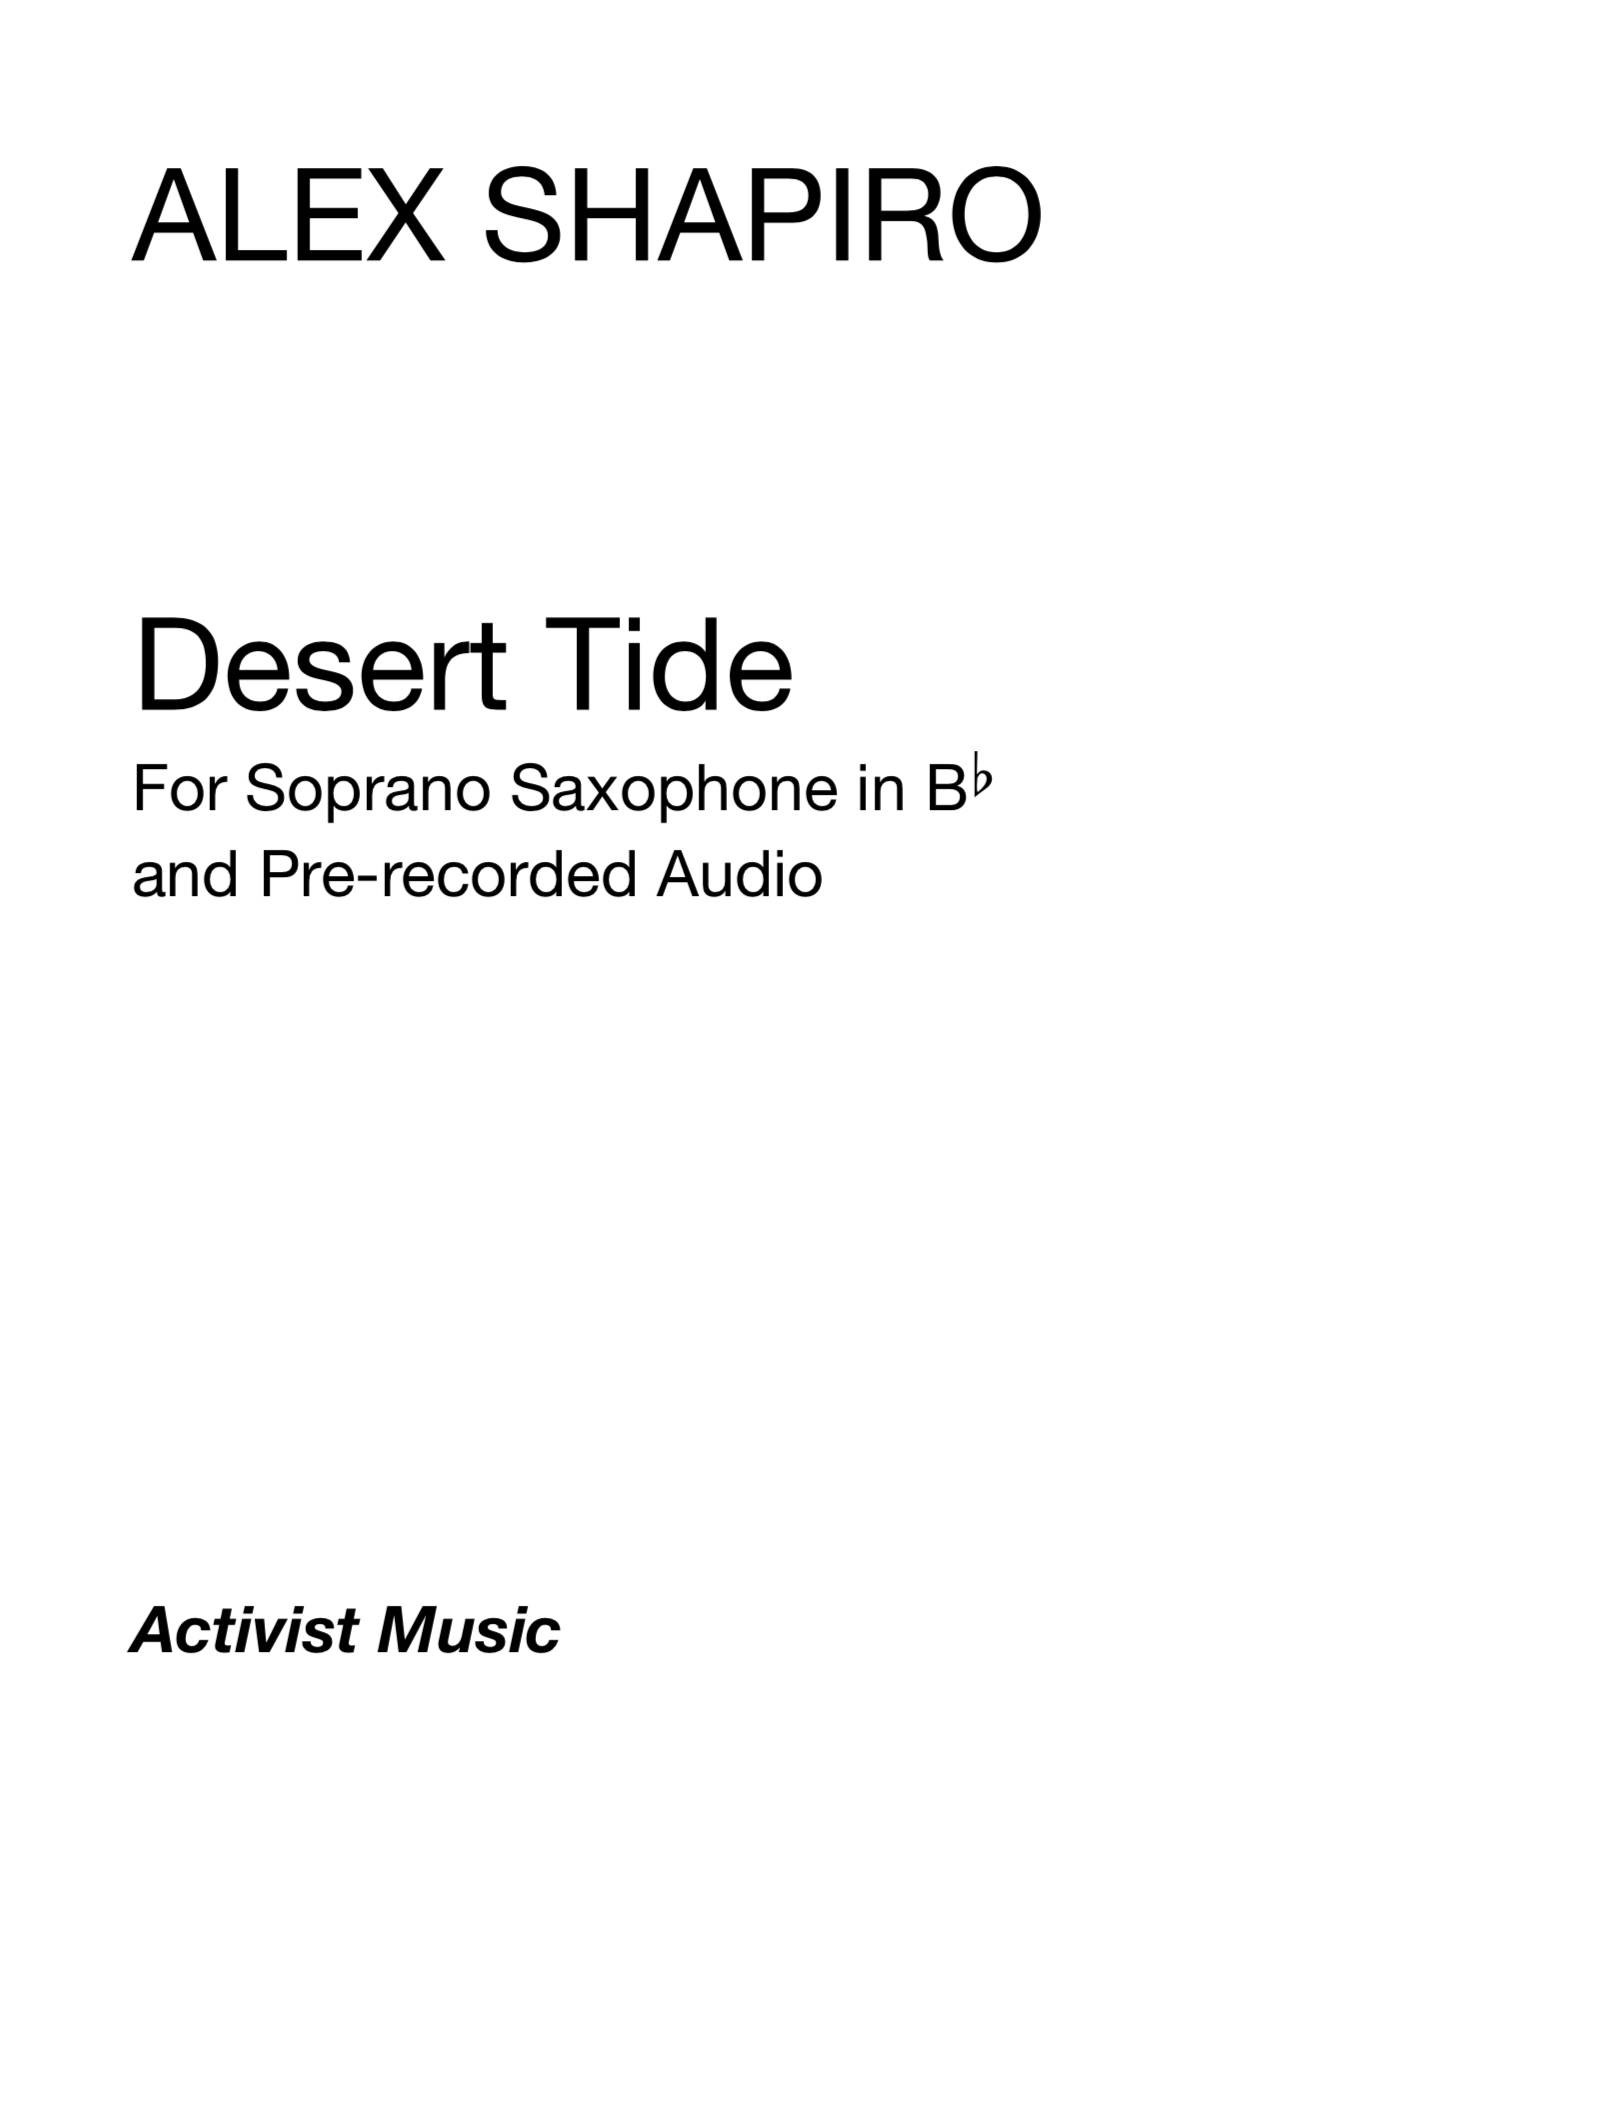 Desert Tide by Alex Shapiro